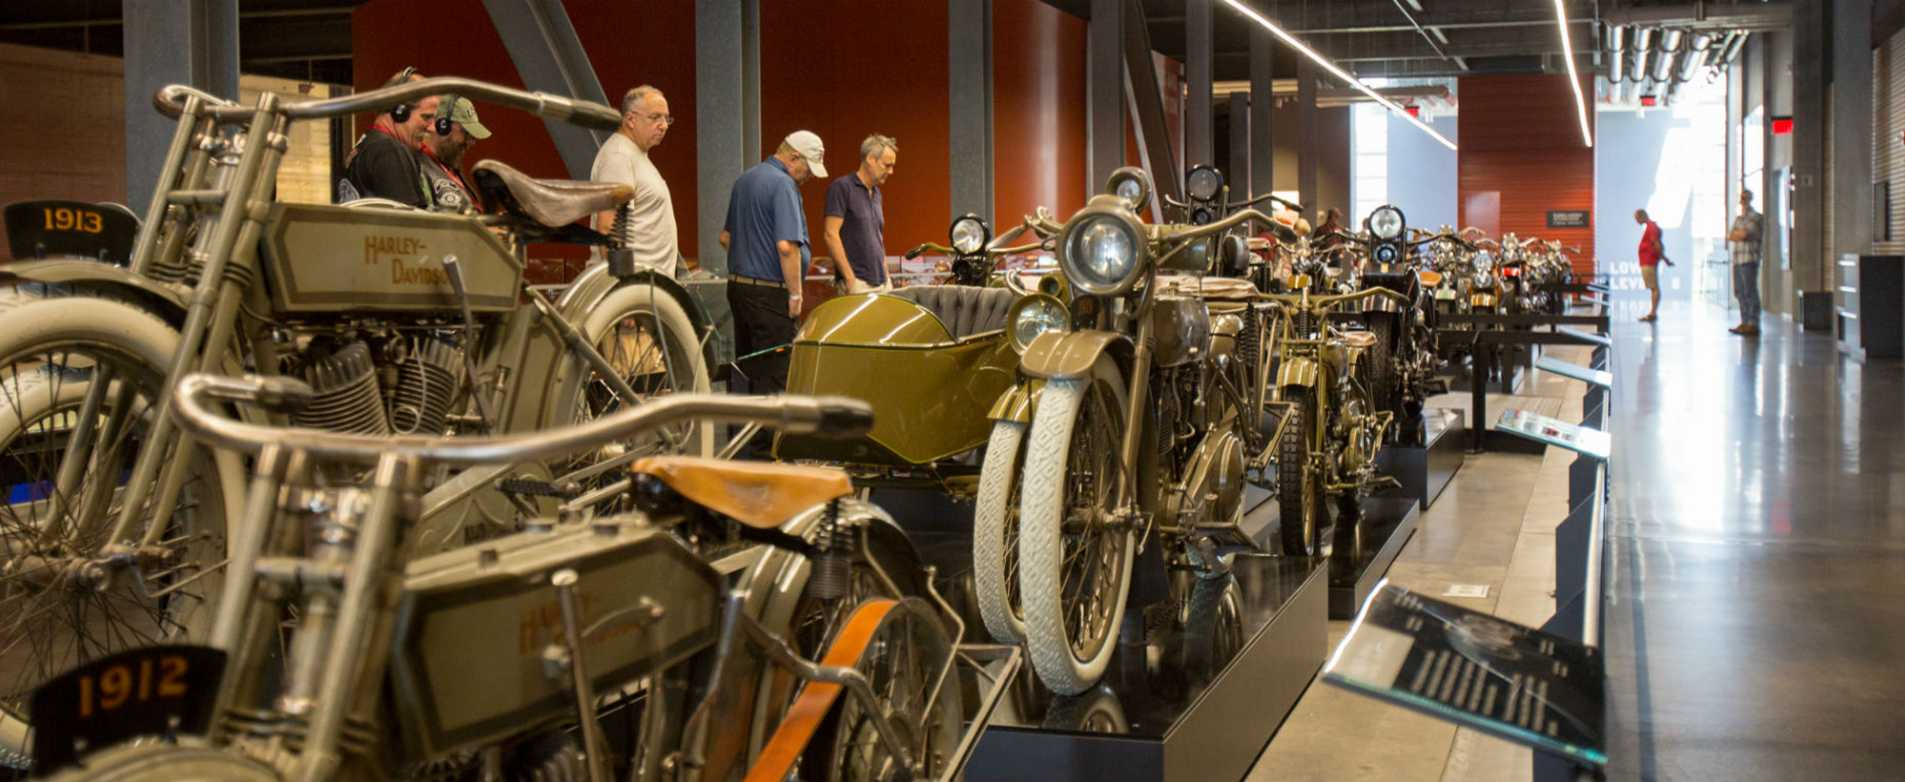 Vintage Motorcycle Exhibit at Harley Davidson Museum in Milwaukee